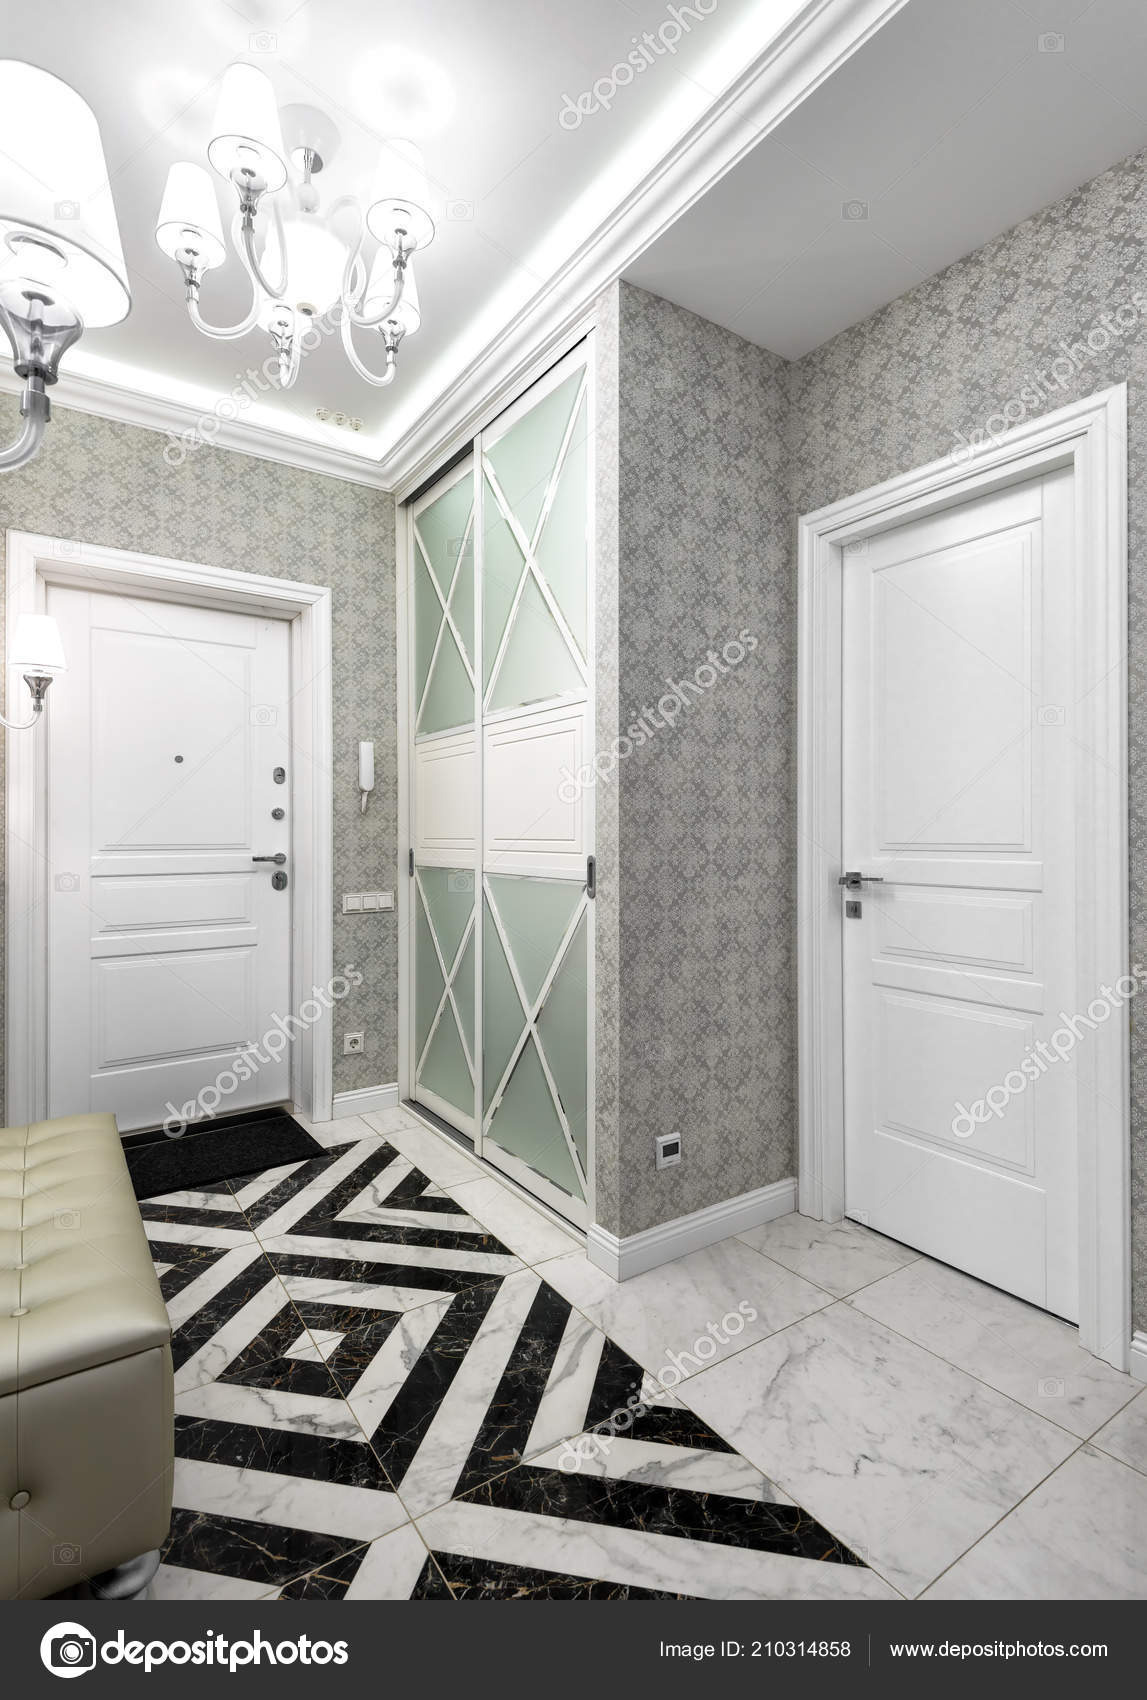 Contemporary Door Designs for Residence Best Of Moscow June 2018 Modern Interior Residential Apartment